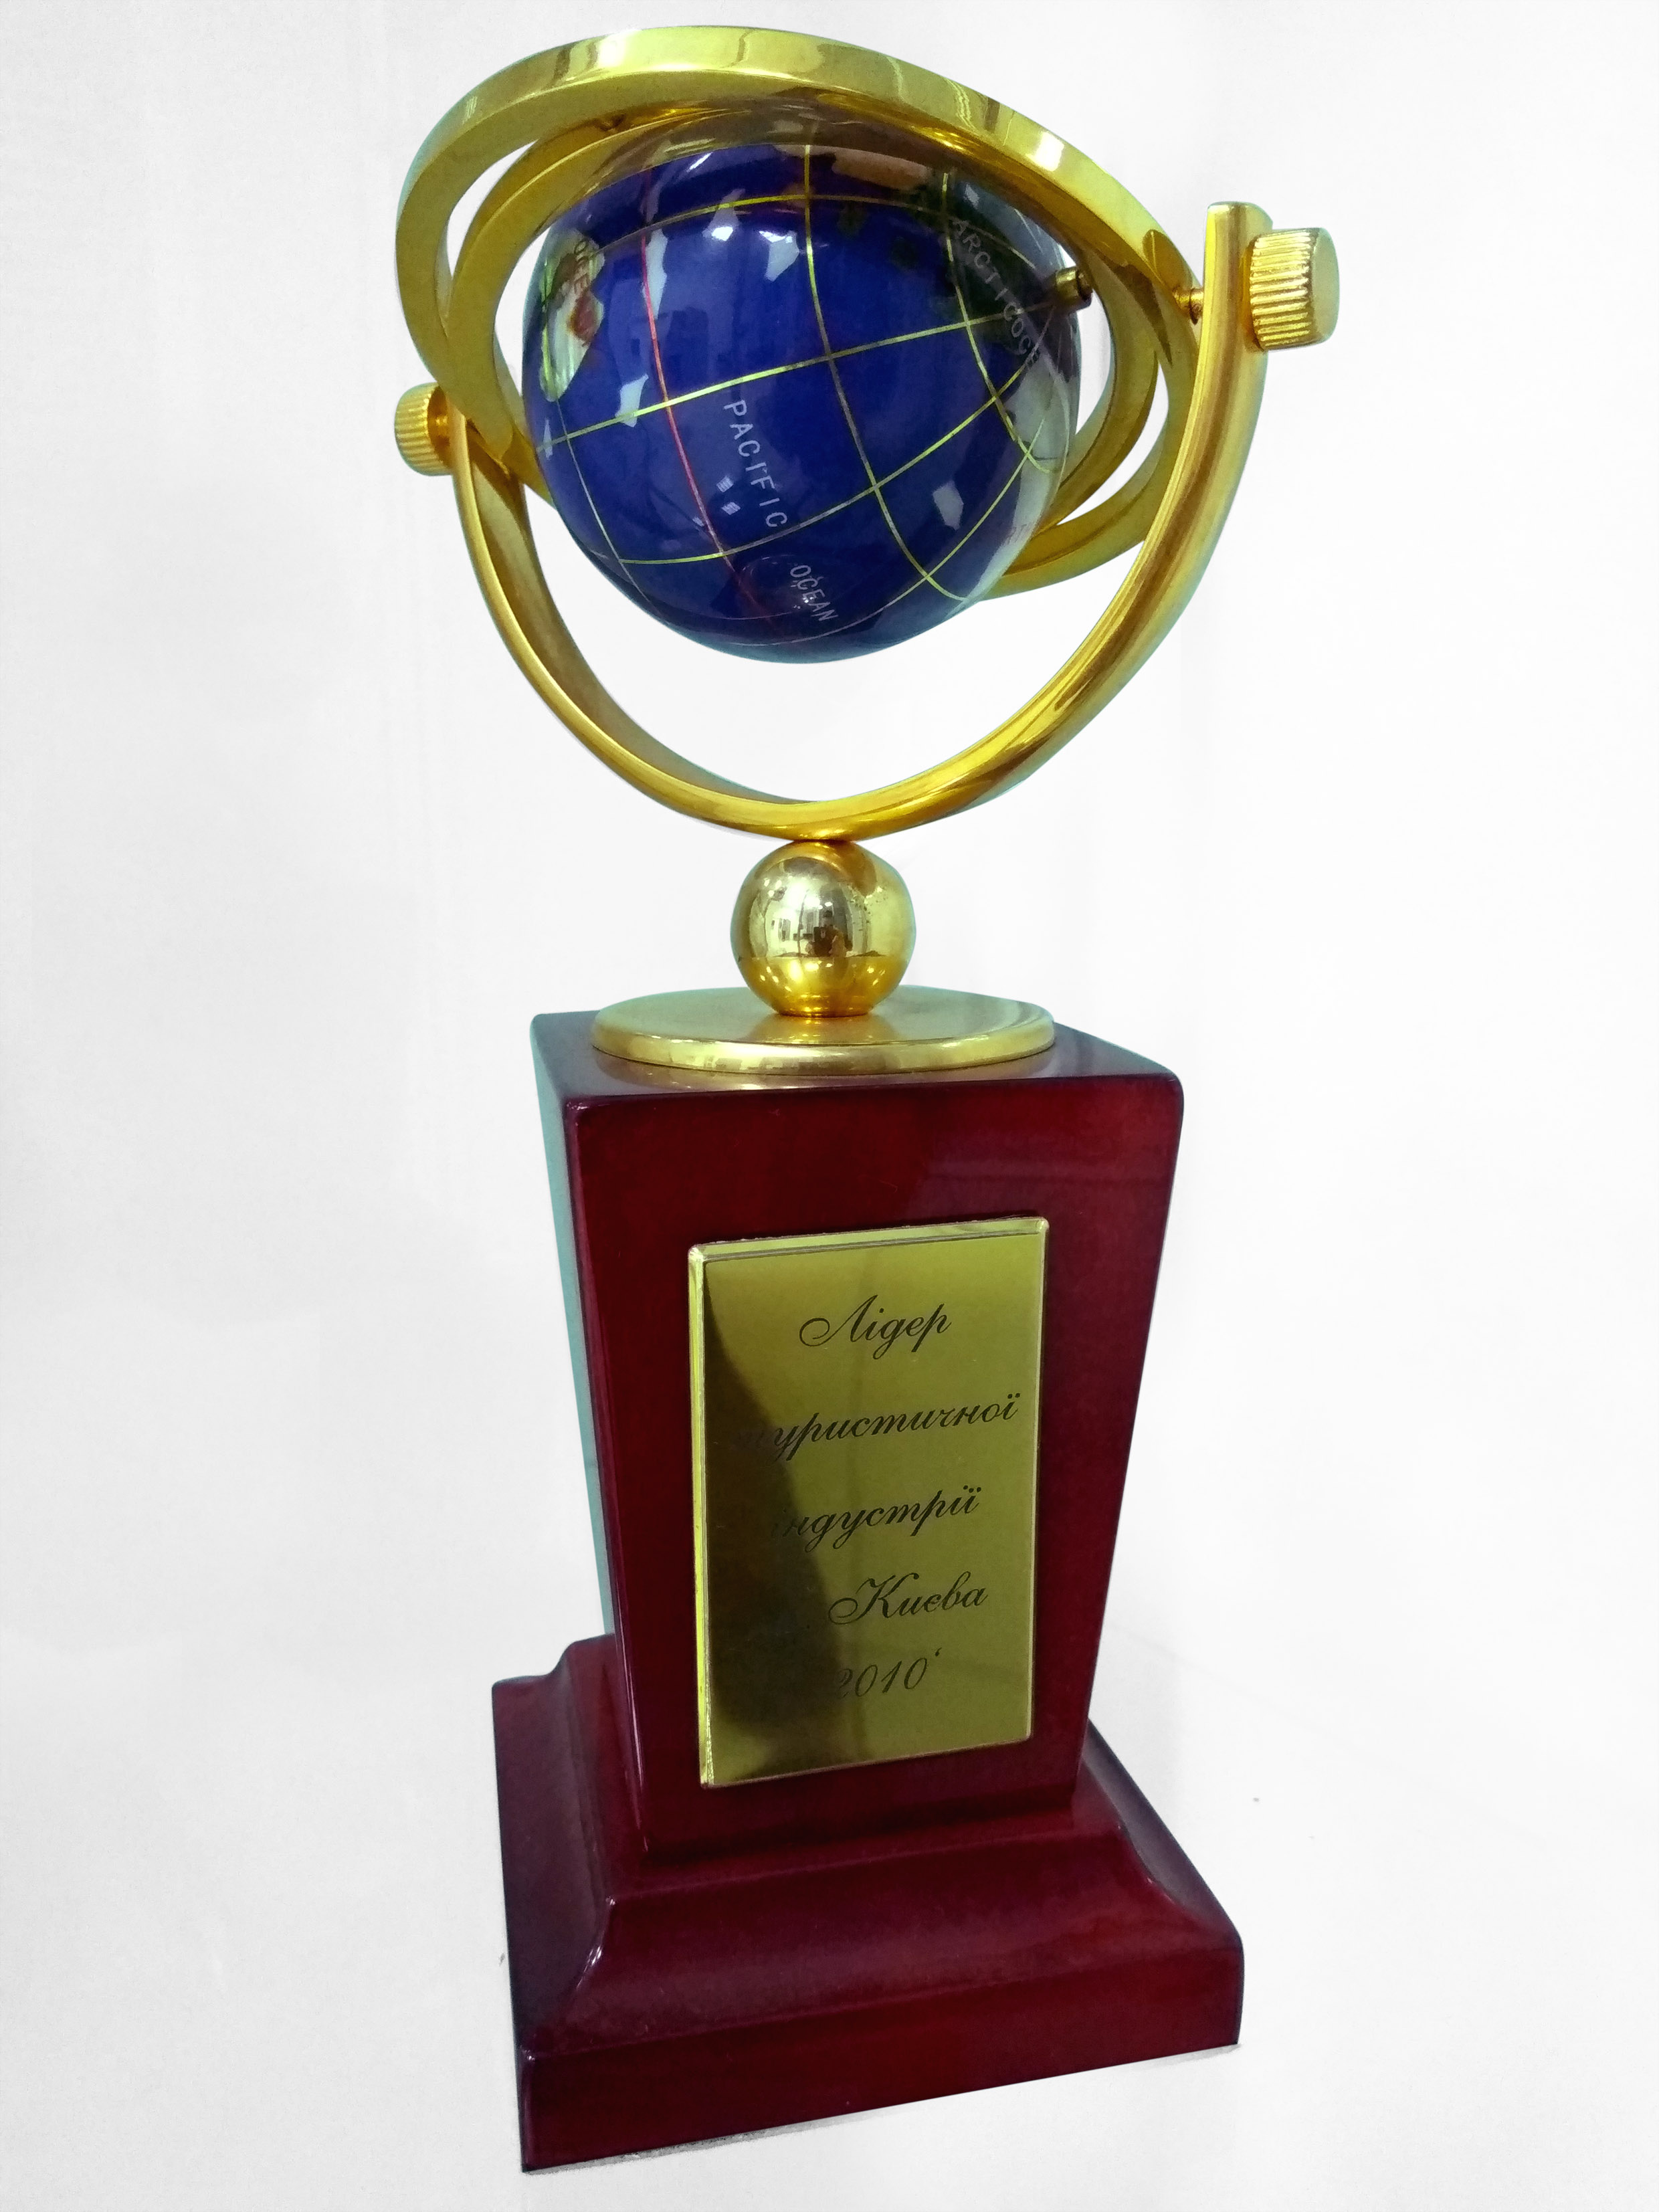 4 AWARD Leader of tourism industry, Kyiv 2010